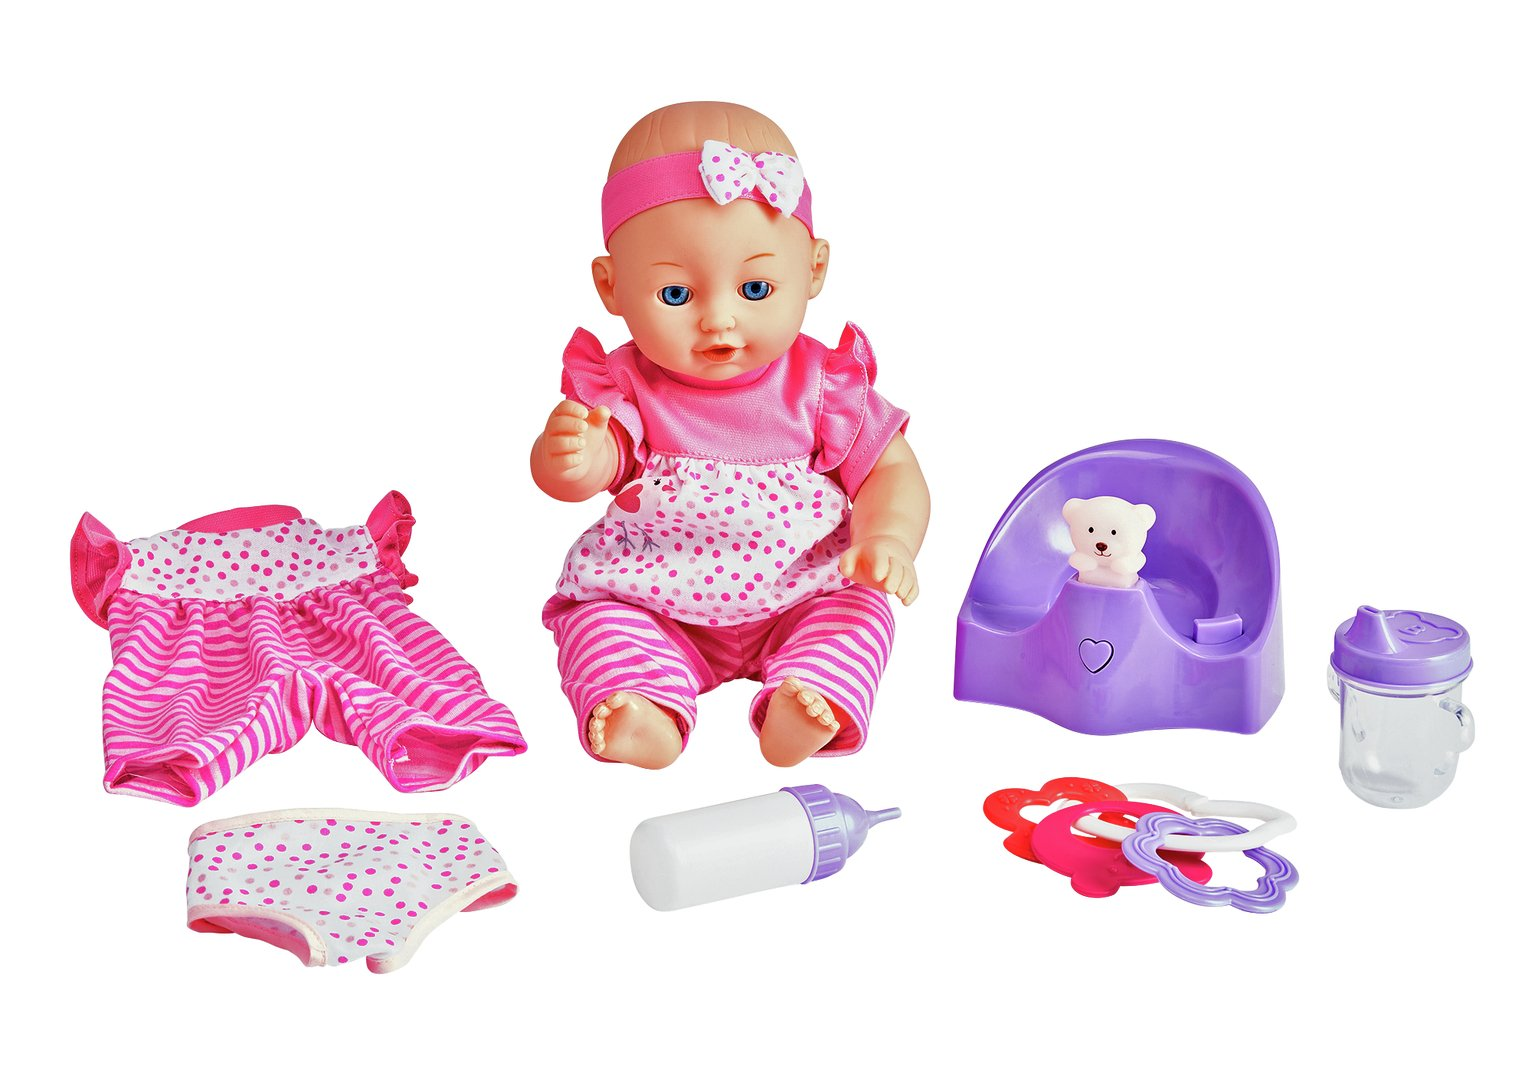 Image of Chad Valley Babies To Love Doll and Interactive Potty Set